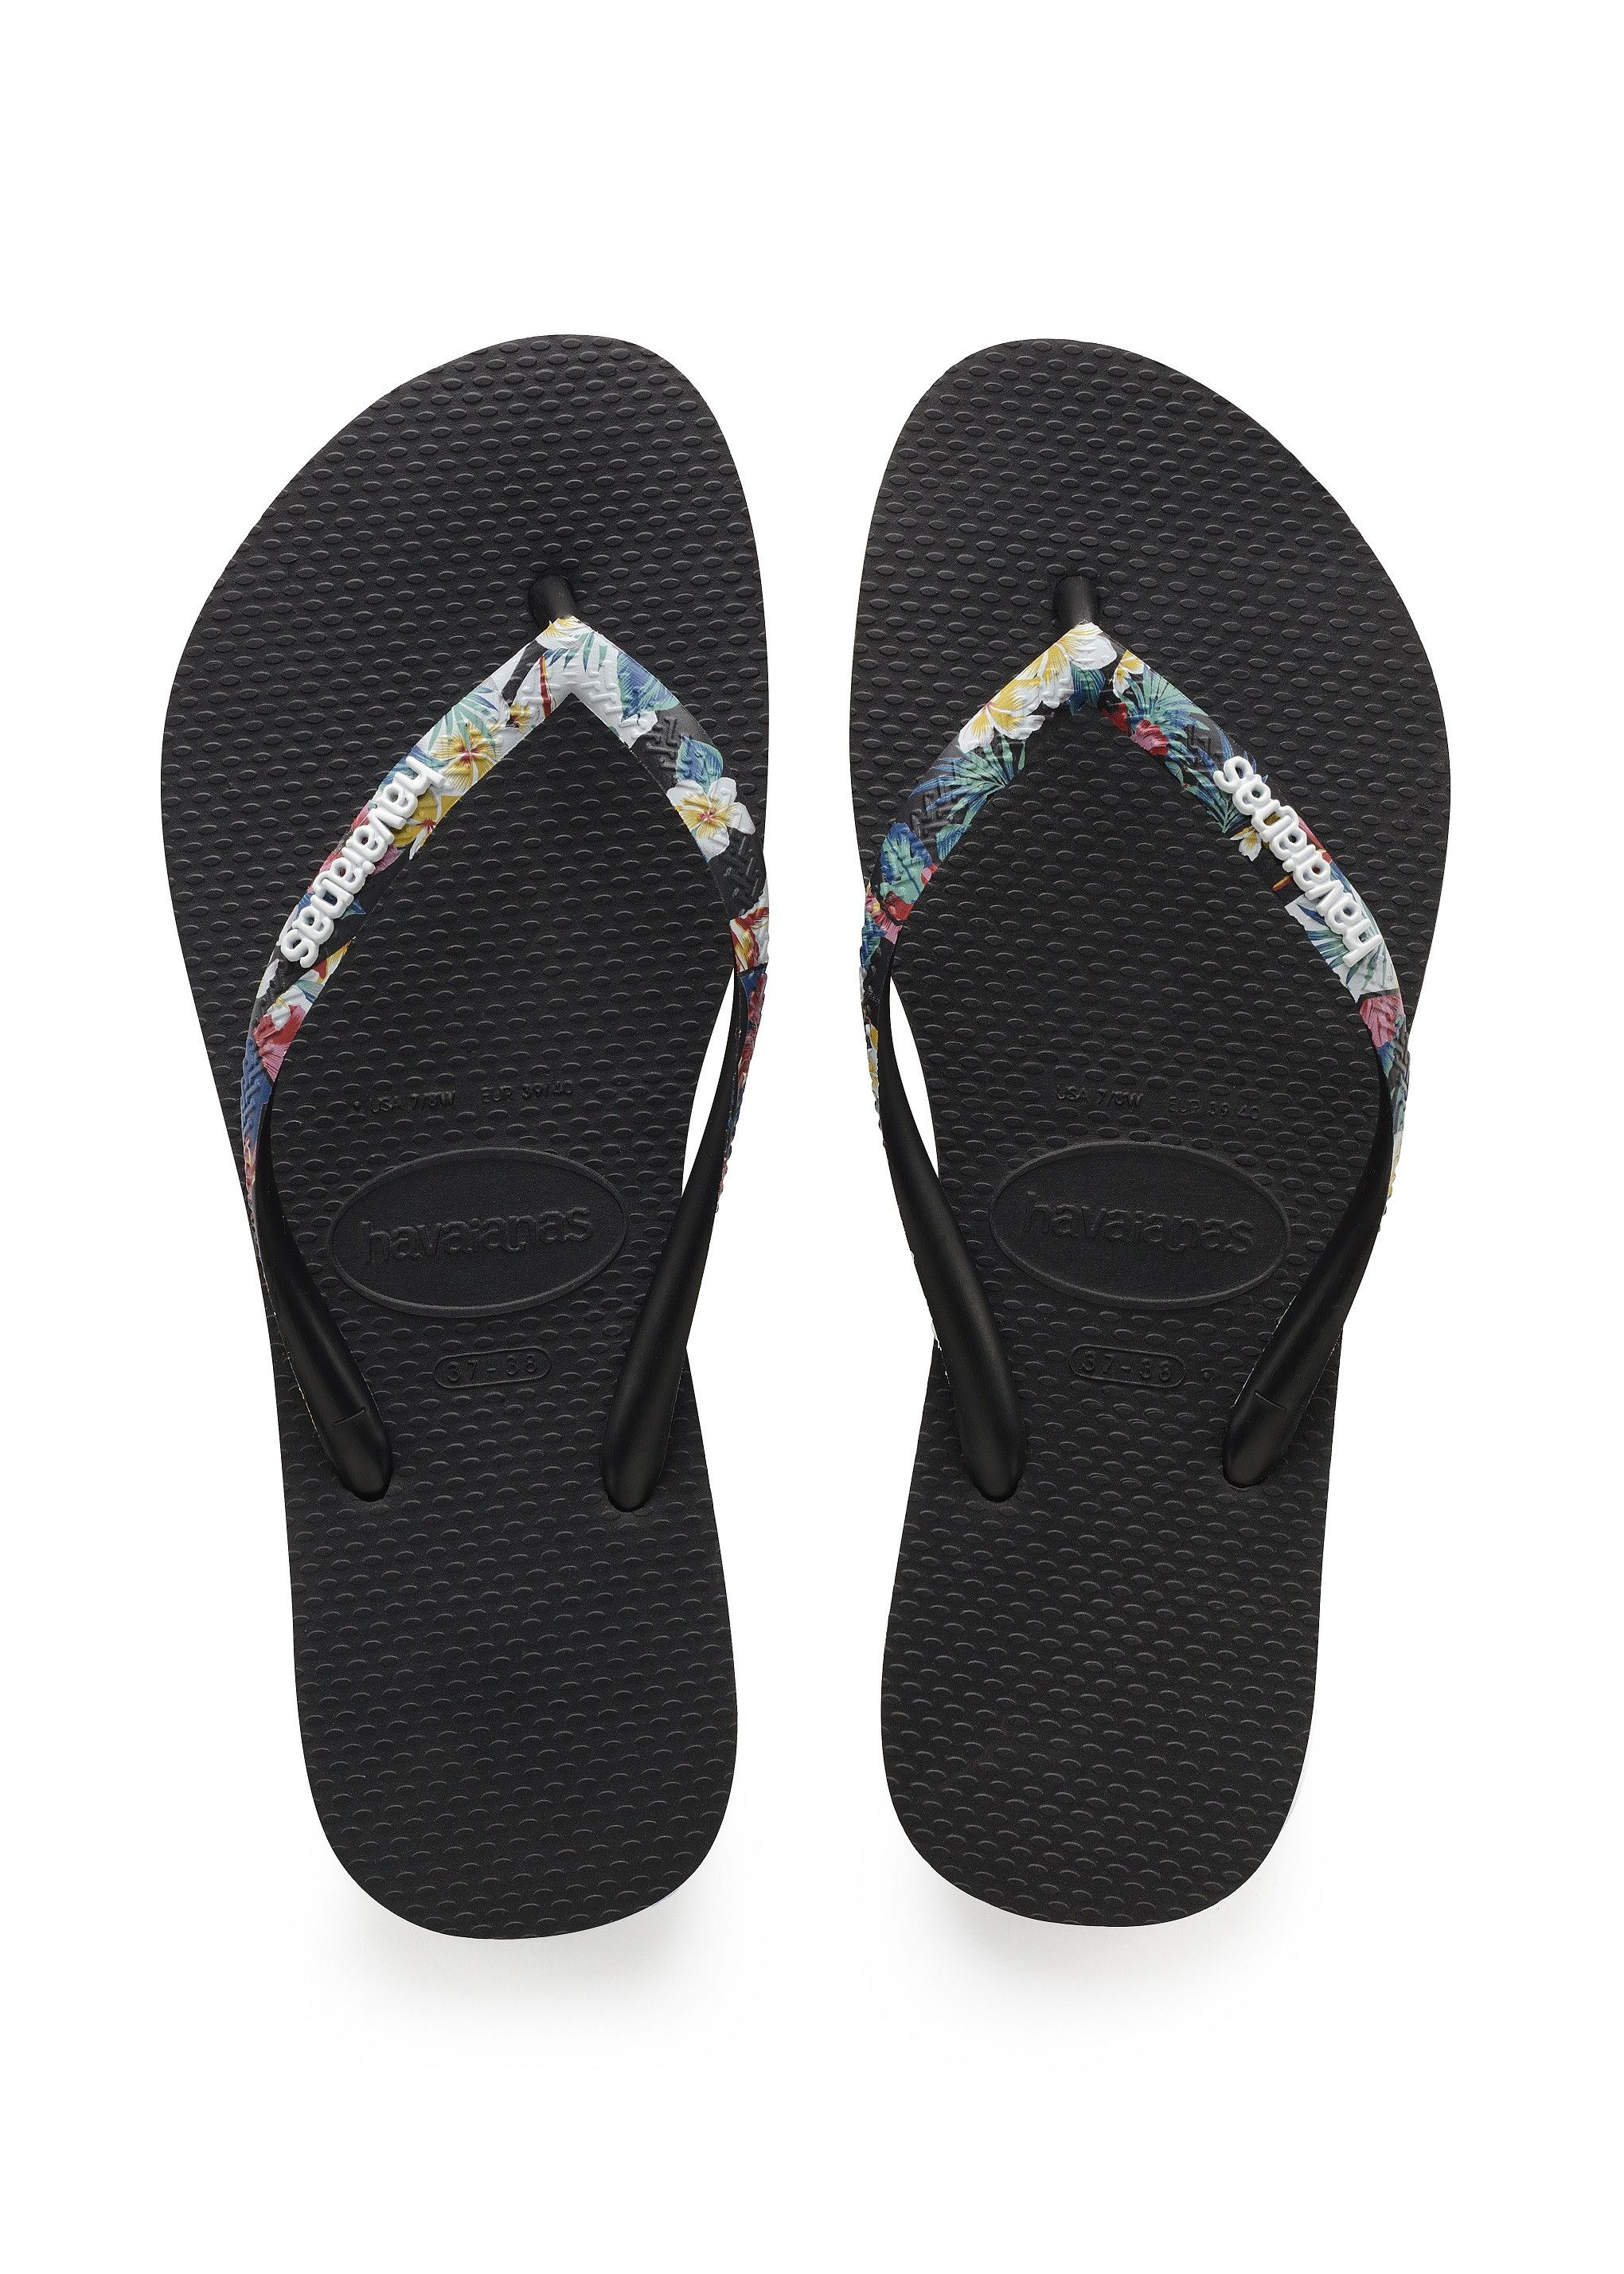 Havaianas Brasil NEW 2018 LOGO SLIM RING BLACK GRAPHITE flip flops beach thongs